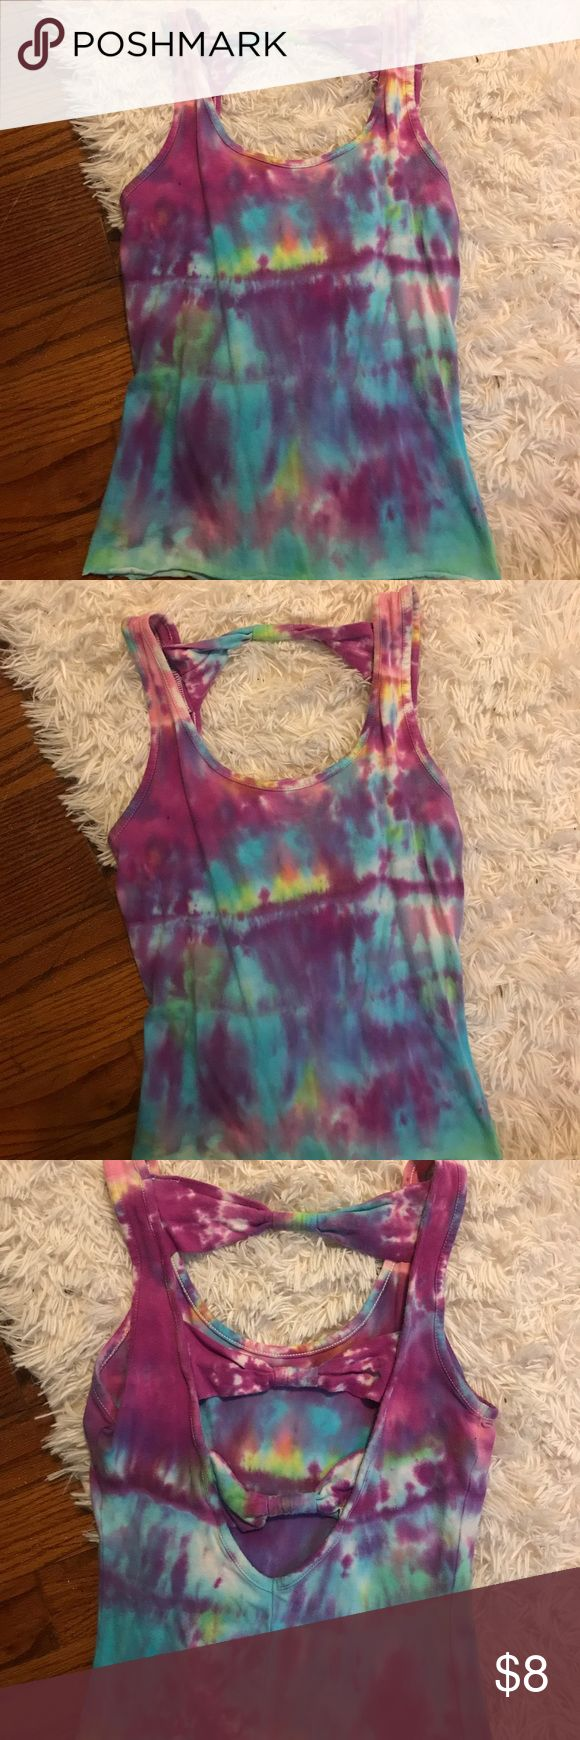 Tie-dye Crop Top Fun & Funky | Cut myself | Bows in the Back | Adorable | Soft and Comfortable | not too short of a crop | Great for festivals or parties | DIY shirt so don't expect perfection 😇 Poof! Tops Crop Tops